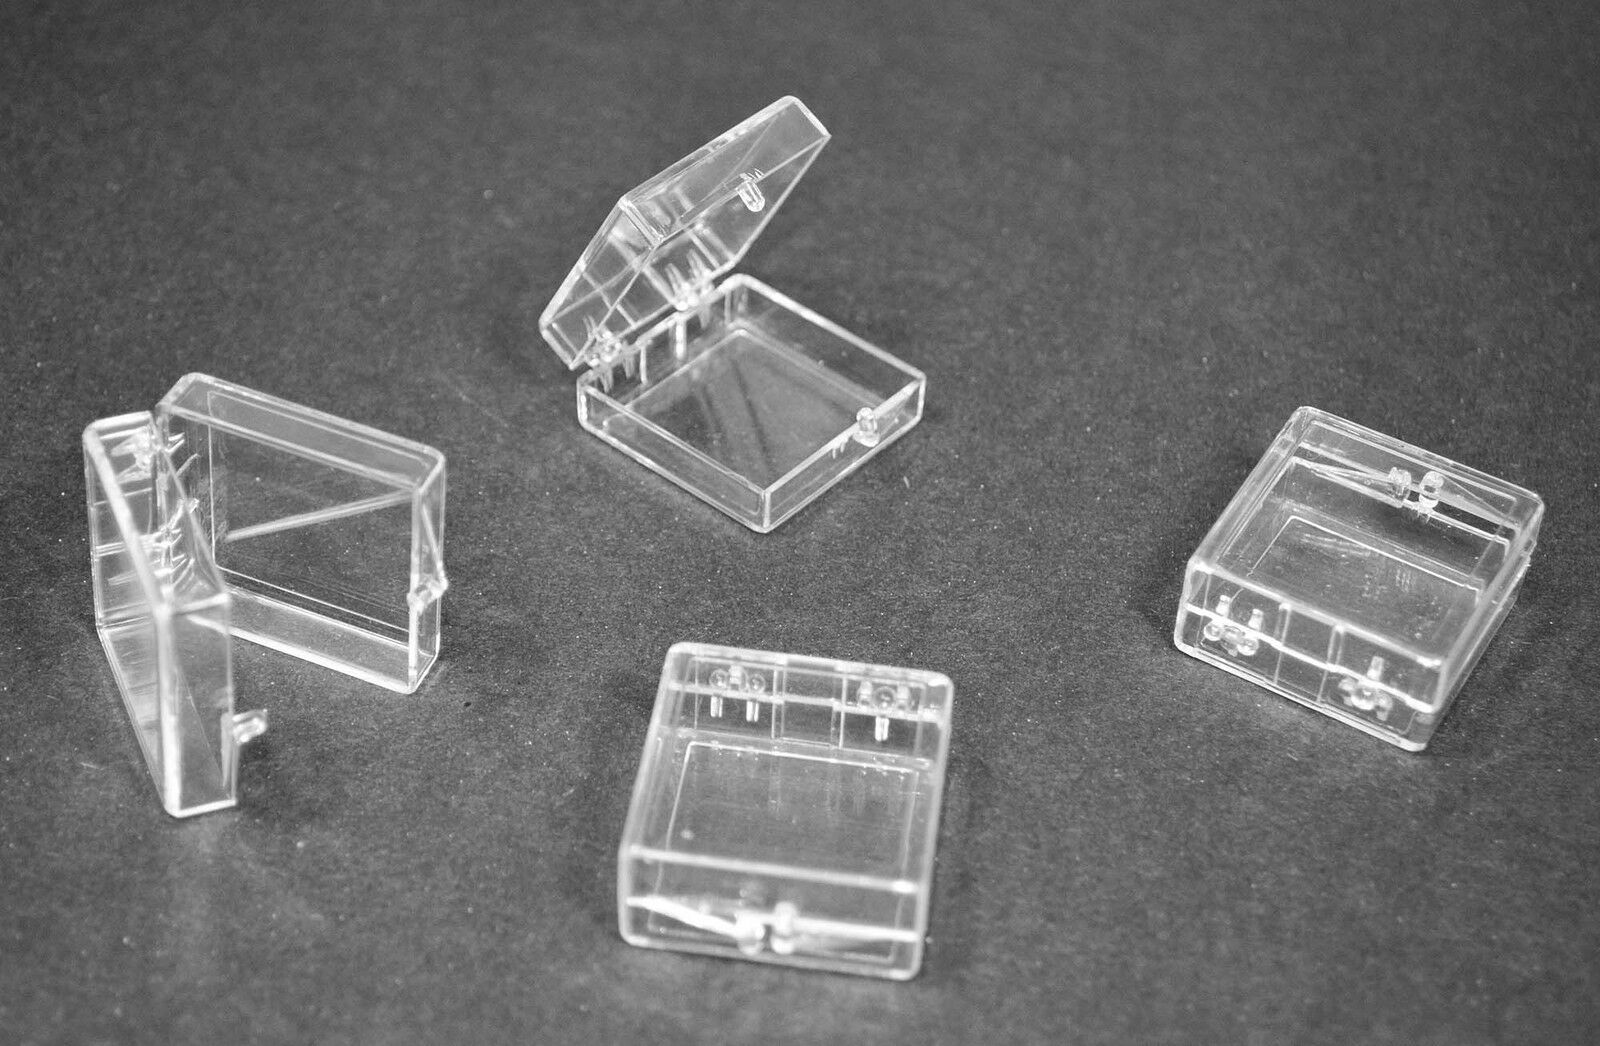 200 Clear Plastic Hinged Storage Boxes ...... 1 1 4  X 1 1 4  X 1 2